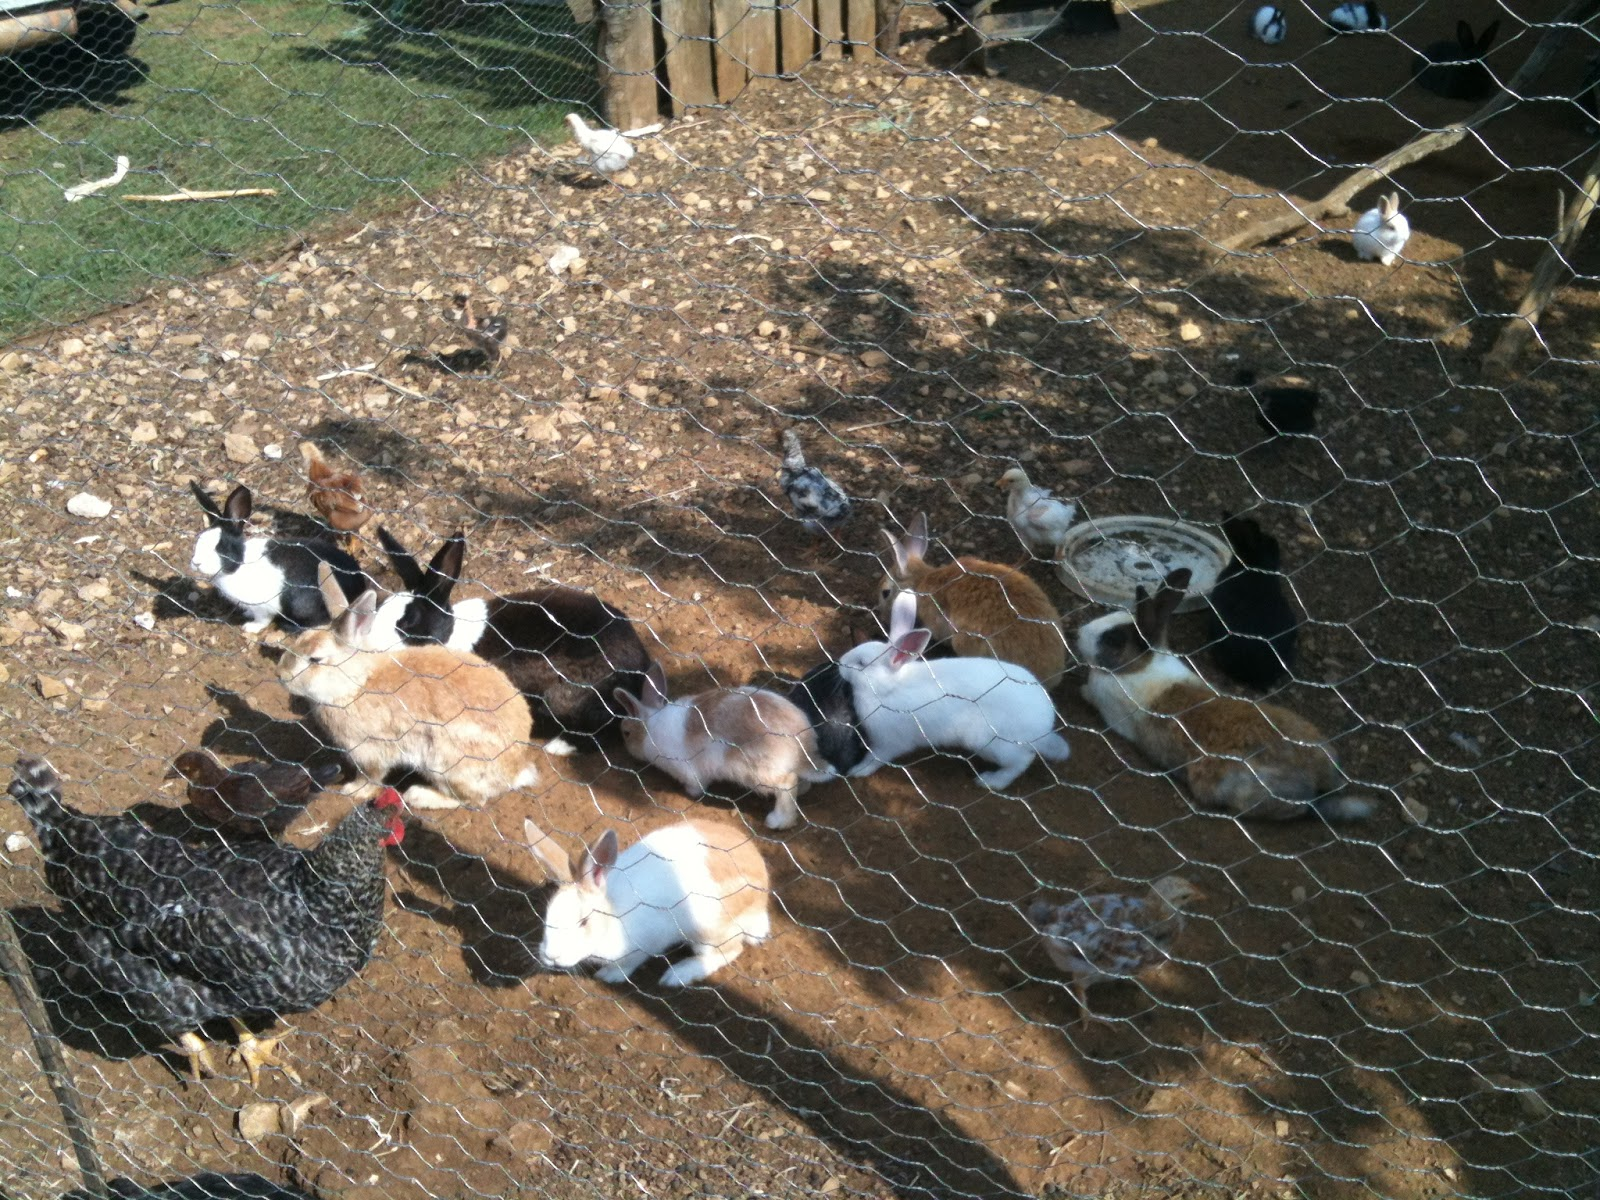 chickens and rabbits Medirabbitcom is funded solely by the generosity of donors every donation, no matter what the size, is appreciated and will aid in the continuing research of medical care and health of rabbits.